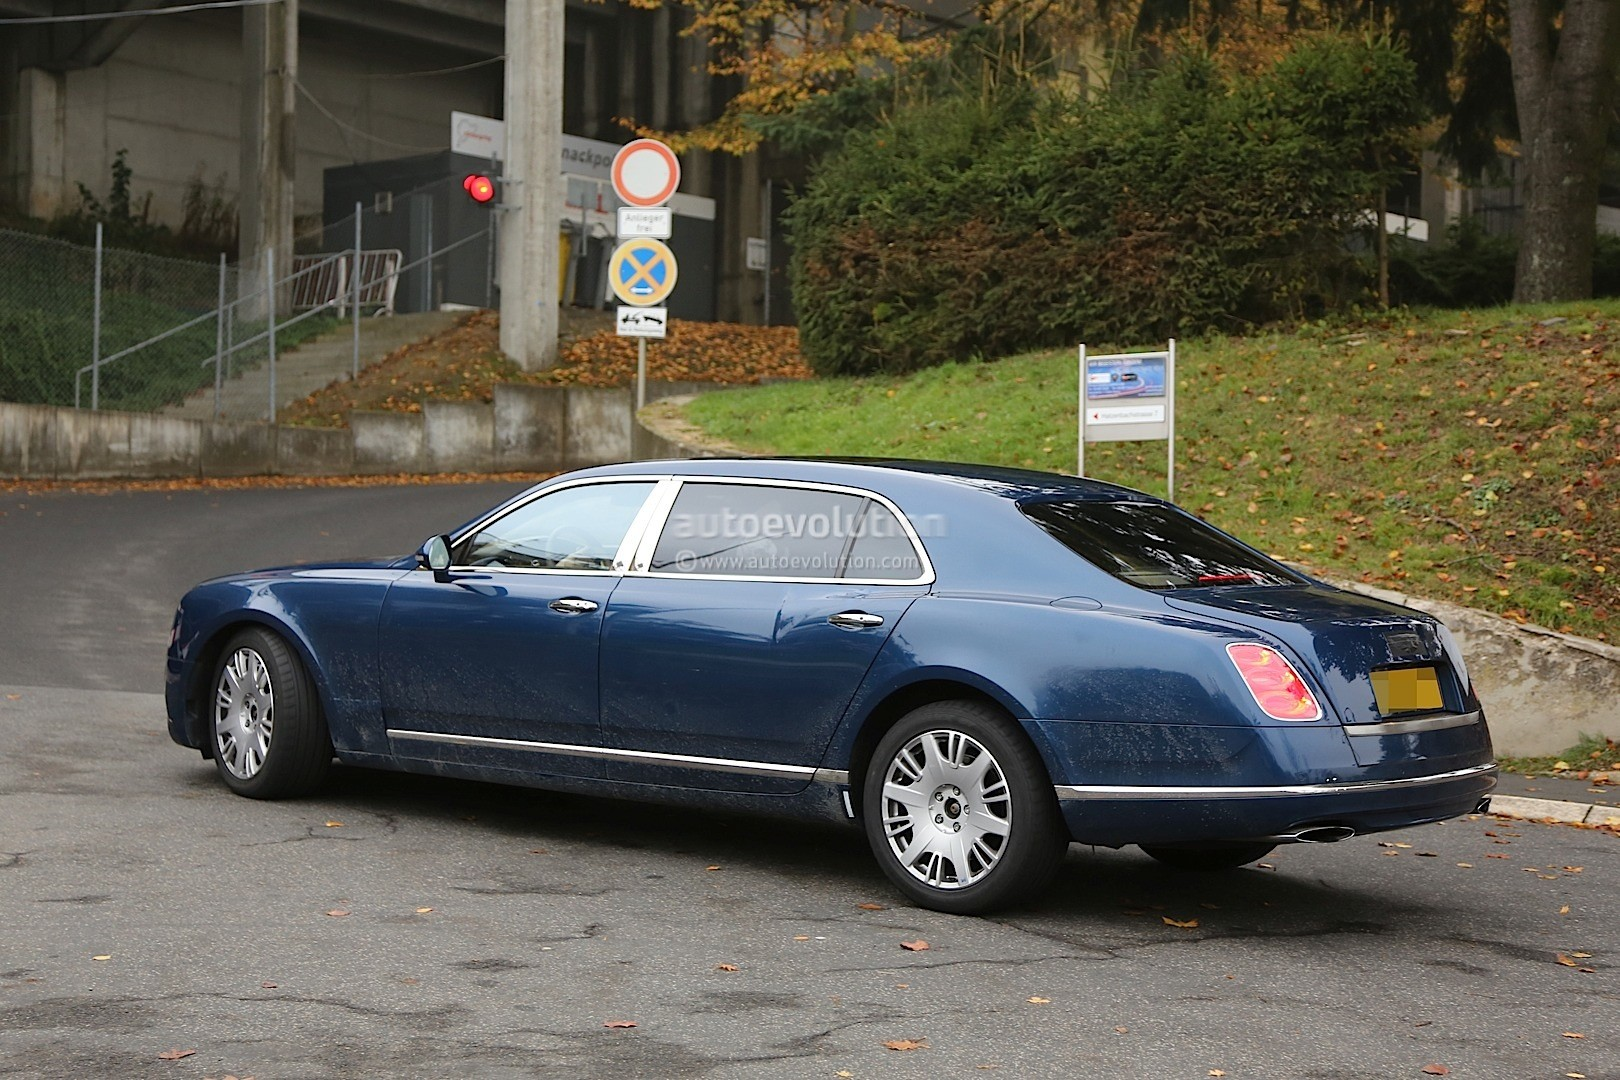 2019 Bentley Arnage photo - 5